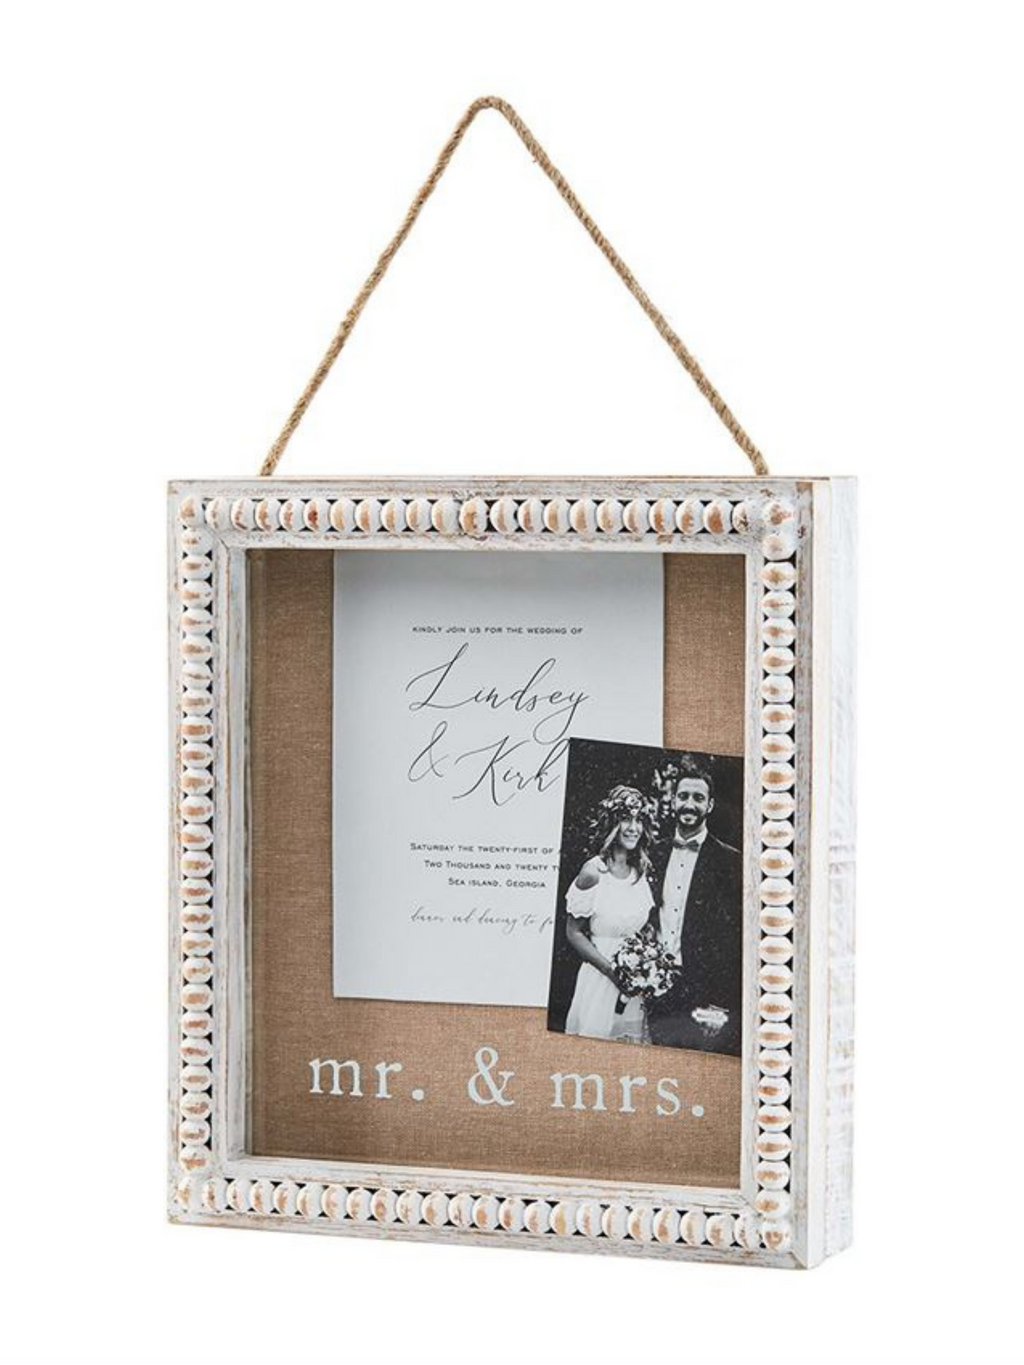 Mr. & Mrs. Shadow Box